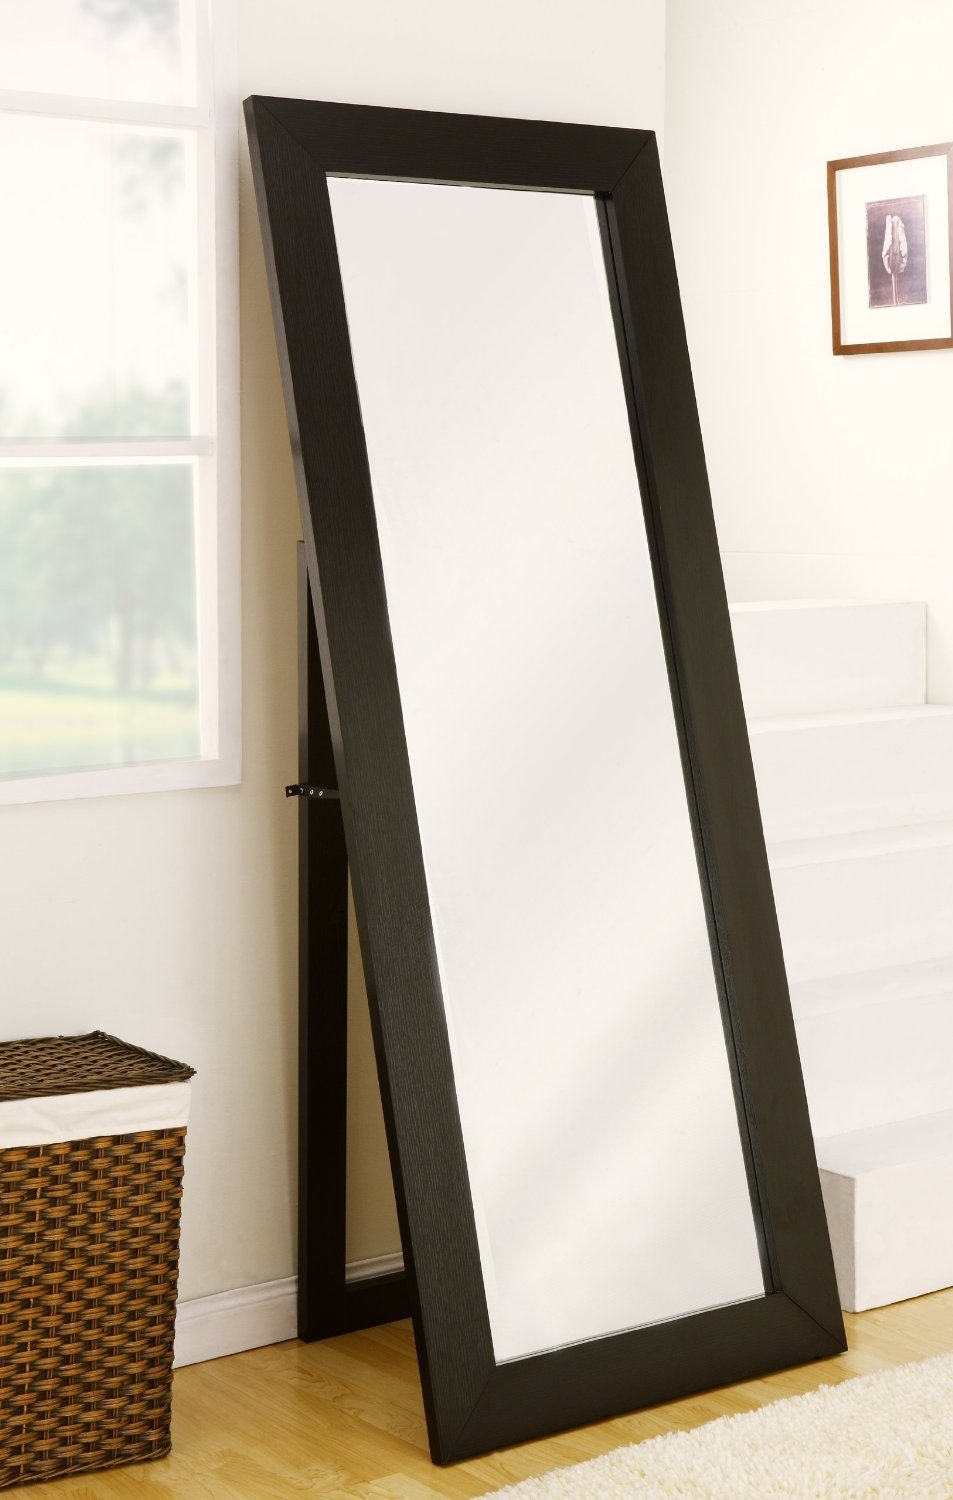 Bedroom Large Decorative Easel Floor Mirror Ikea Floor Mirror With Regard To Large Stand Alone Mirror (Image 1 of 15)